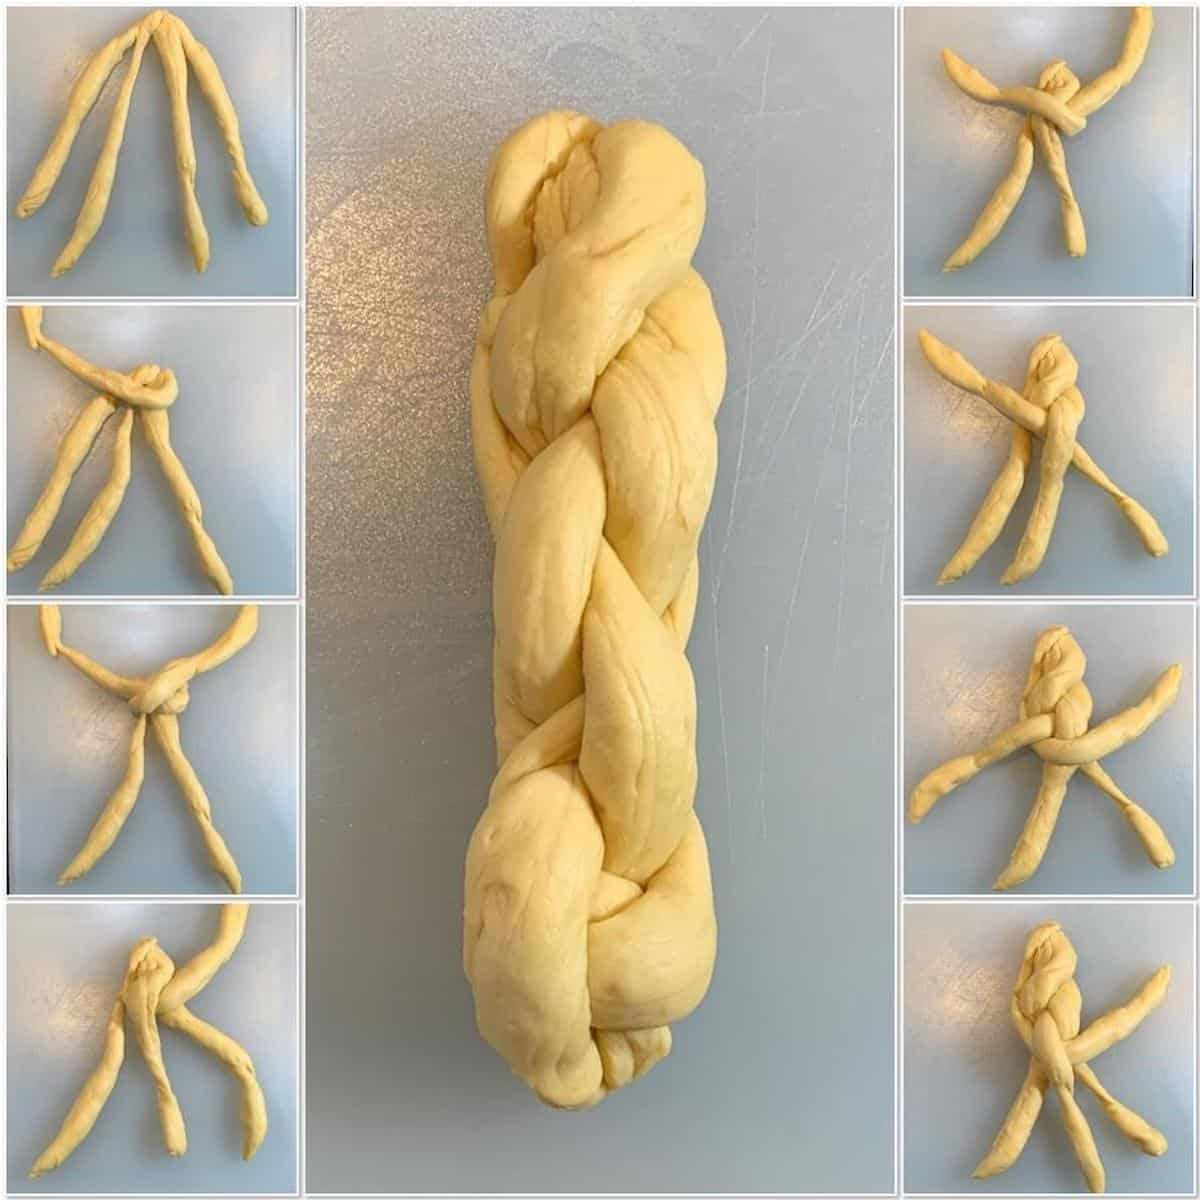 shaping 4 strand braided oblong challah collage